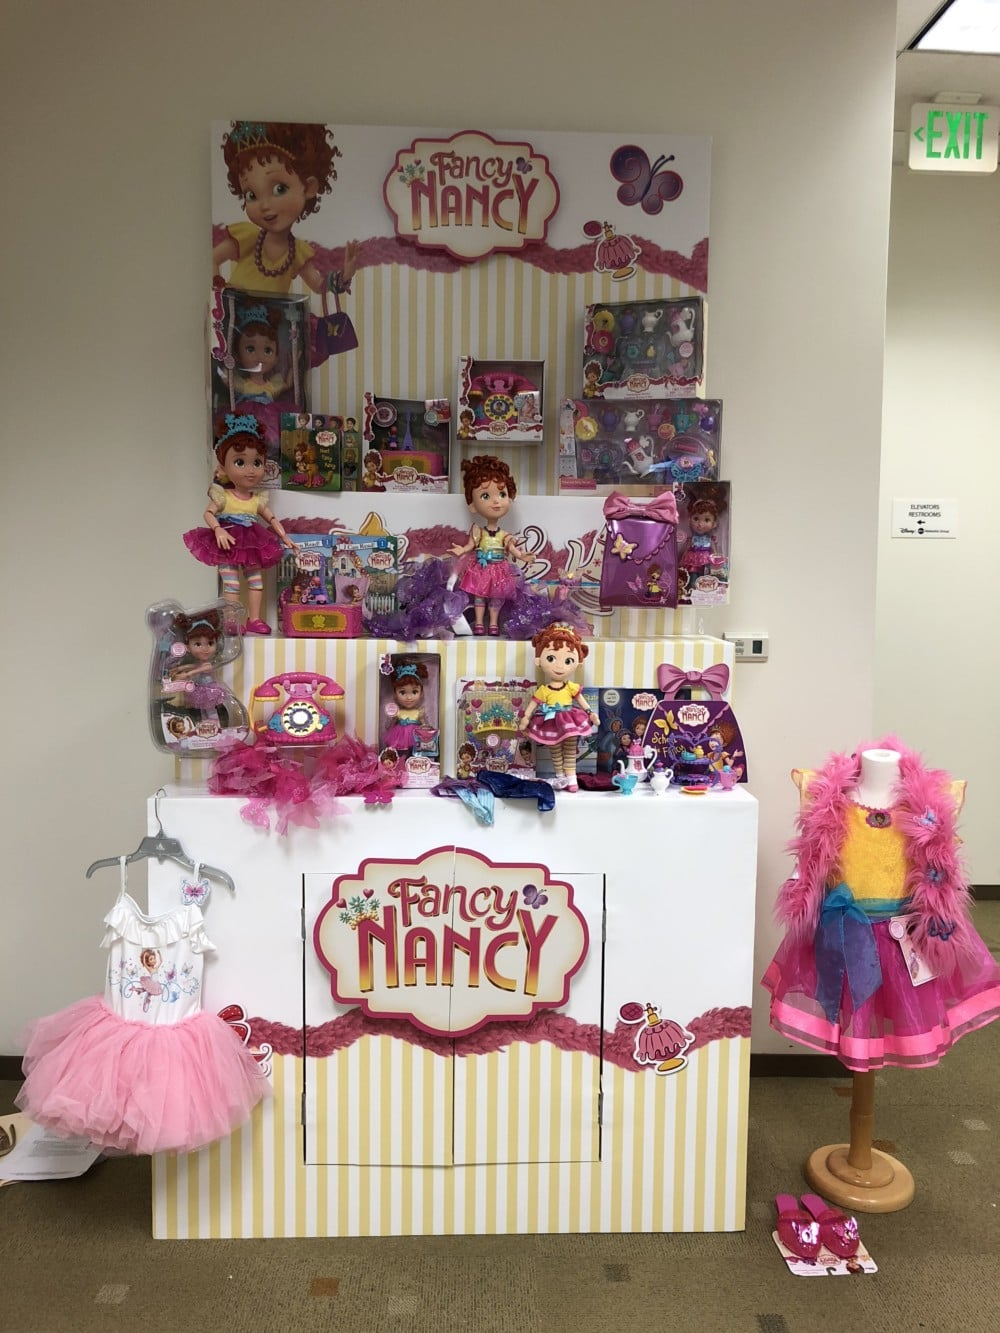 Fancy nancy merchandise